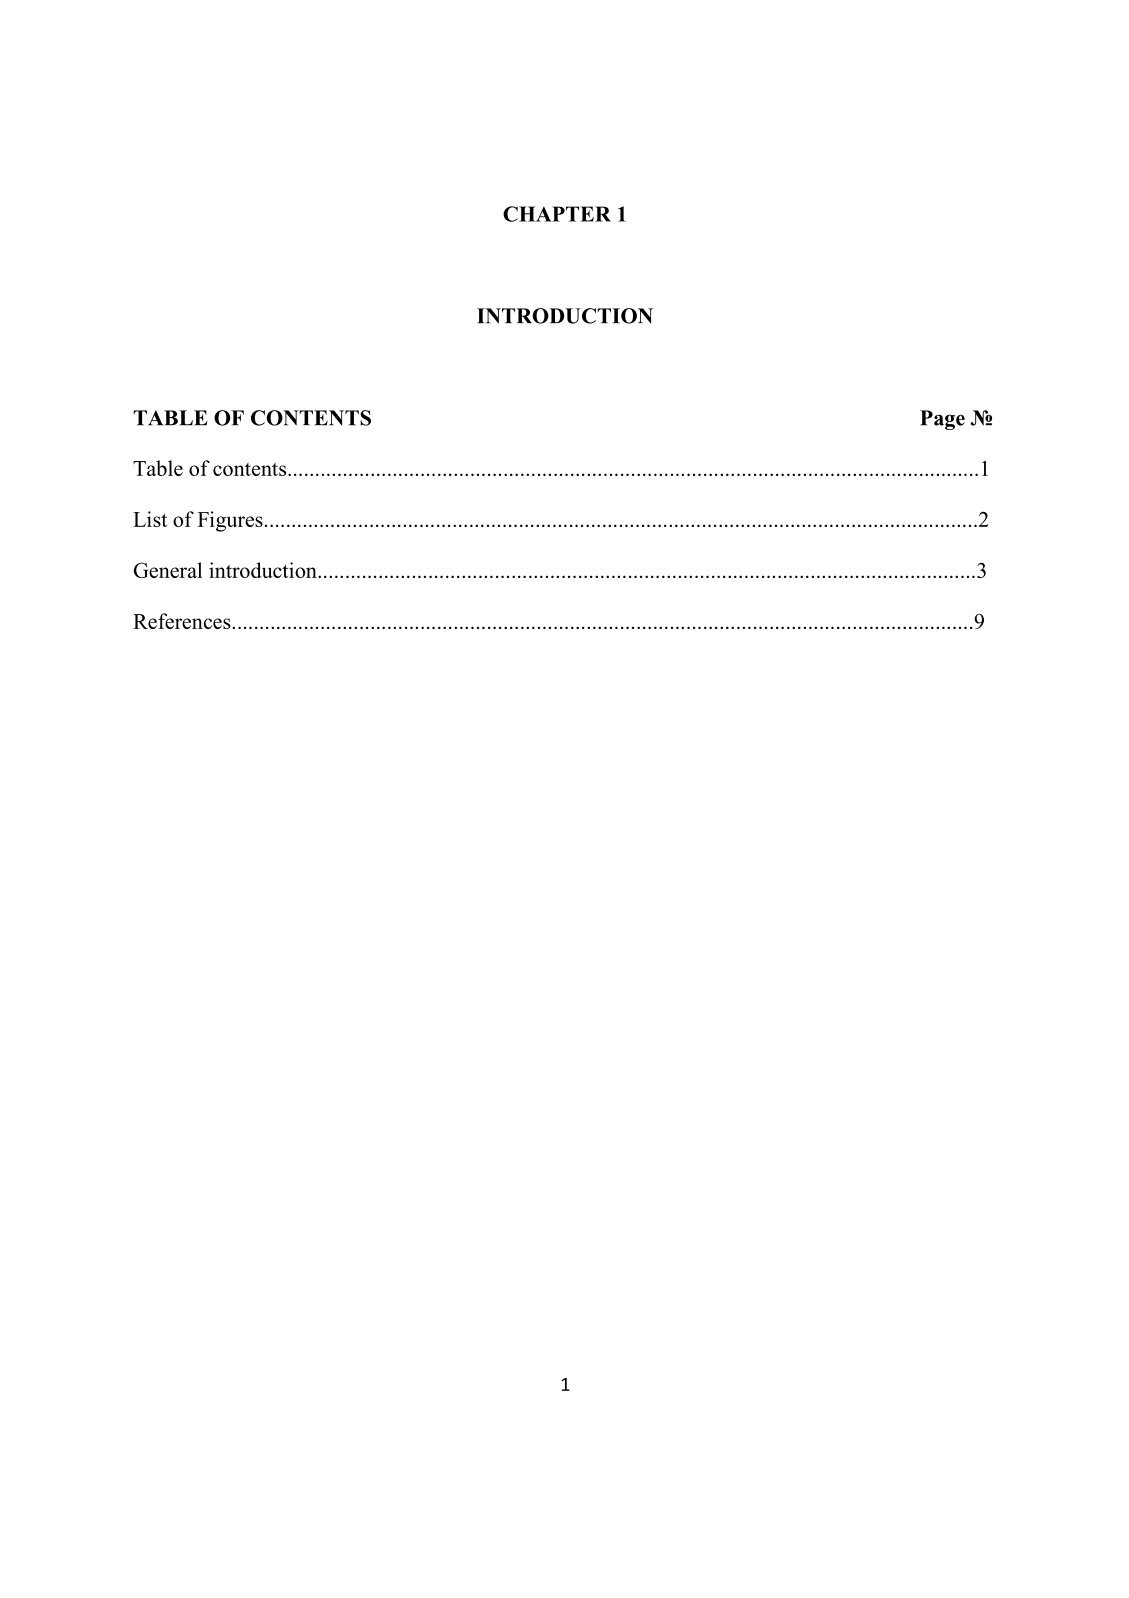 creative writing test - non-fiction (u.s. version) odesk answers Creative writing test – non-fiction (us version) upwork answers 1 making journal entries at a specific time of day can help a writer discipline him or herself to.